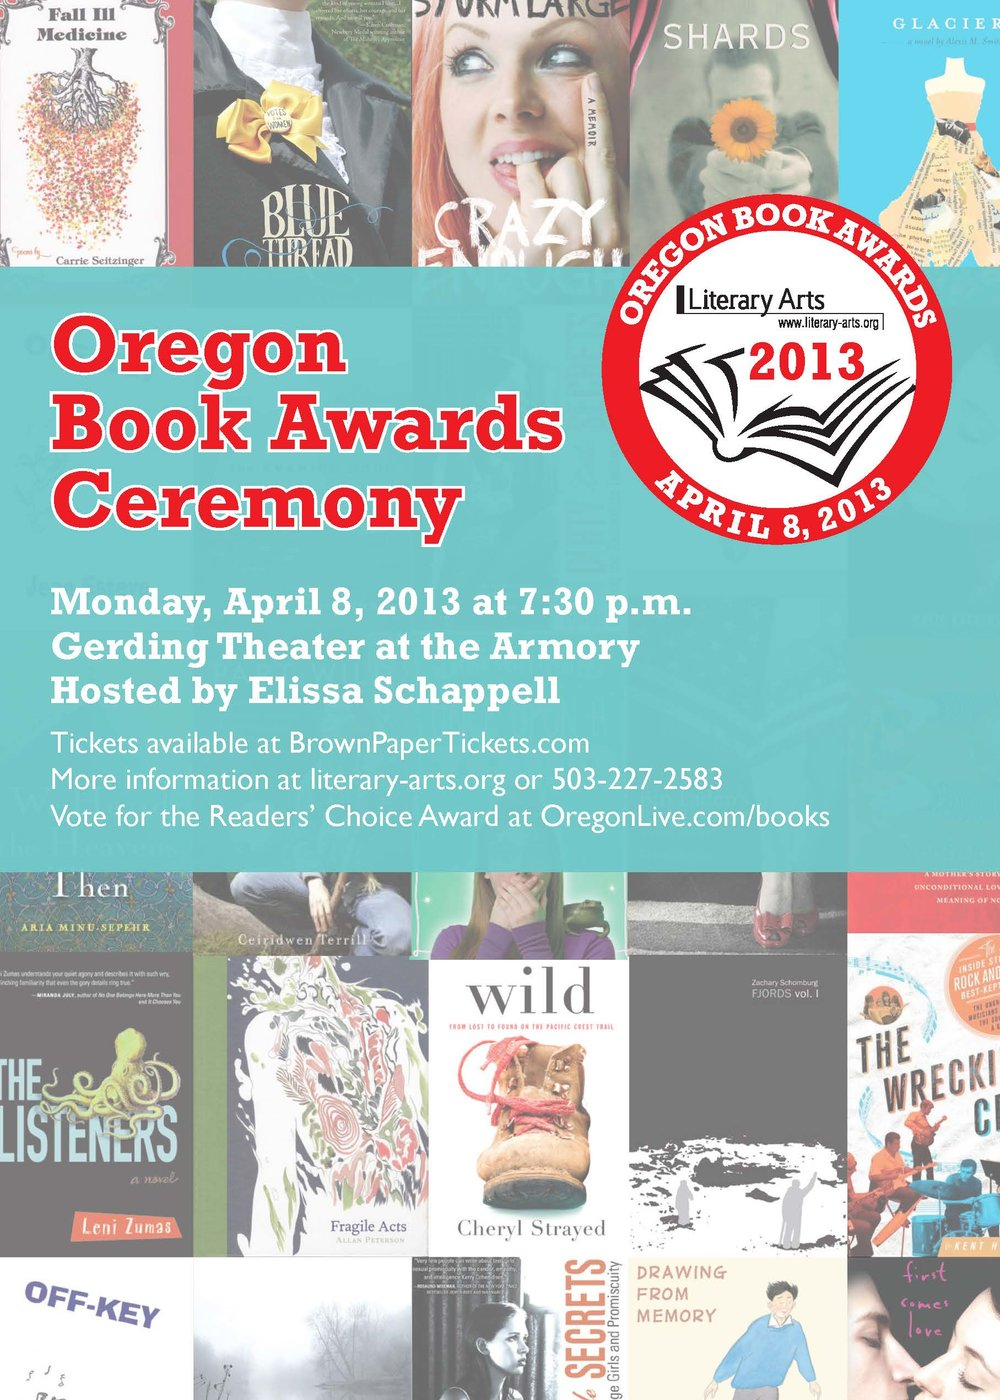 Postcard for the 2013 Oregon Book Awards